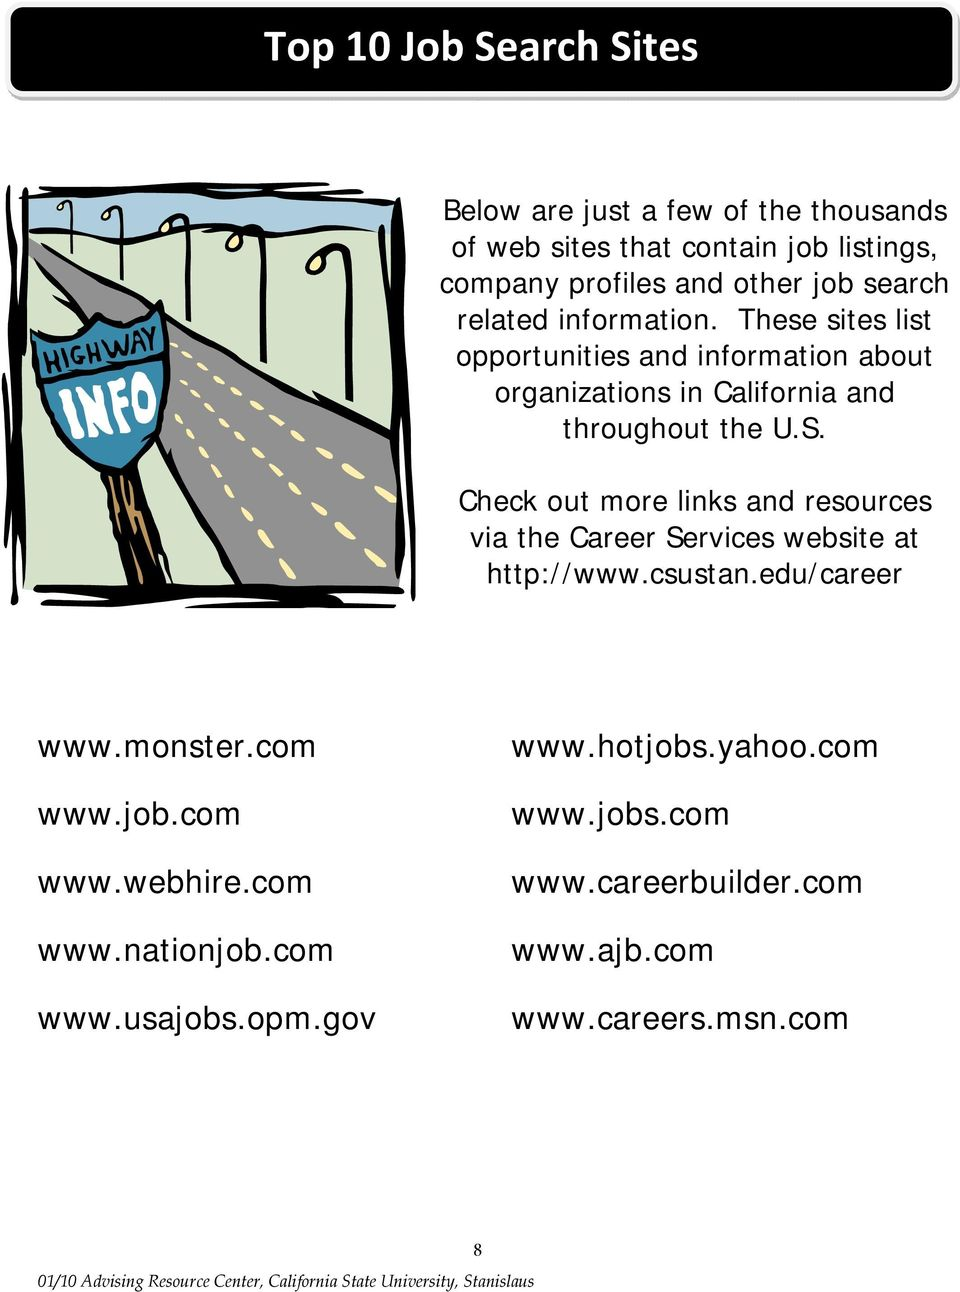 Check out more links and resources via the Career Services website at http://www.csustan.edu/career www.monster.com www.job.com www.webhire.